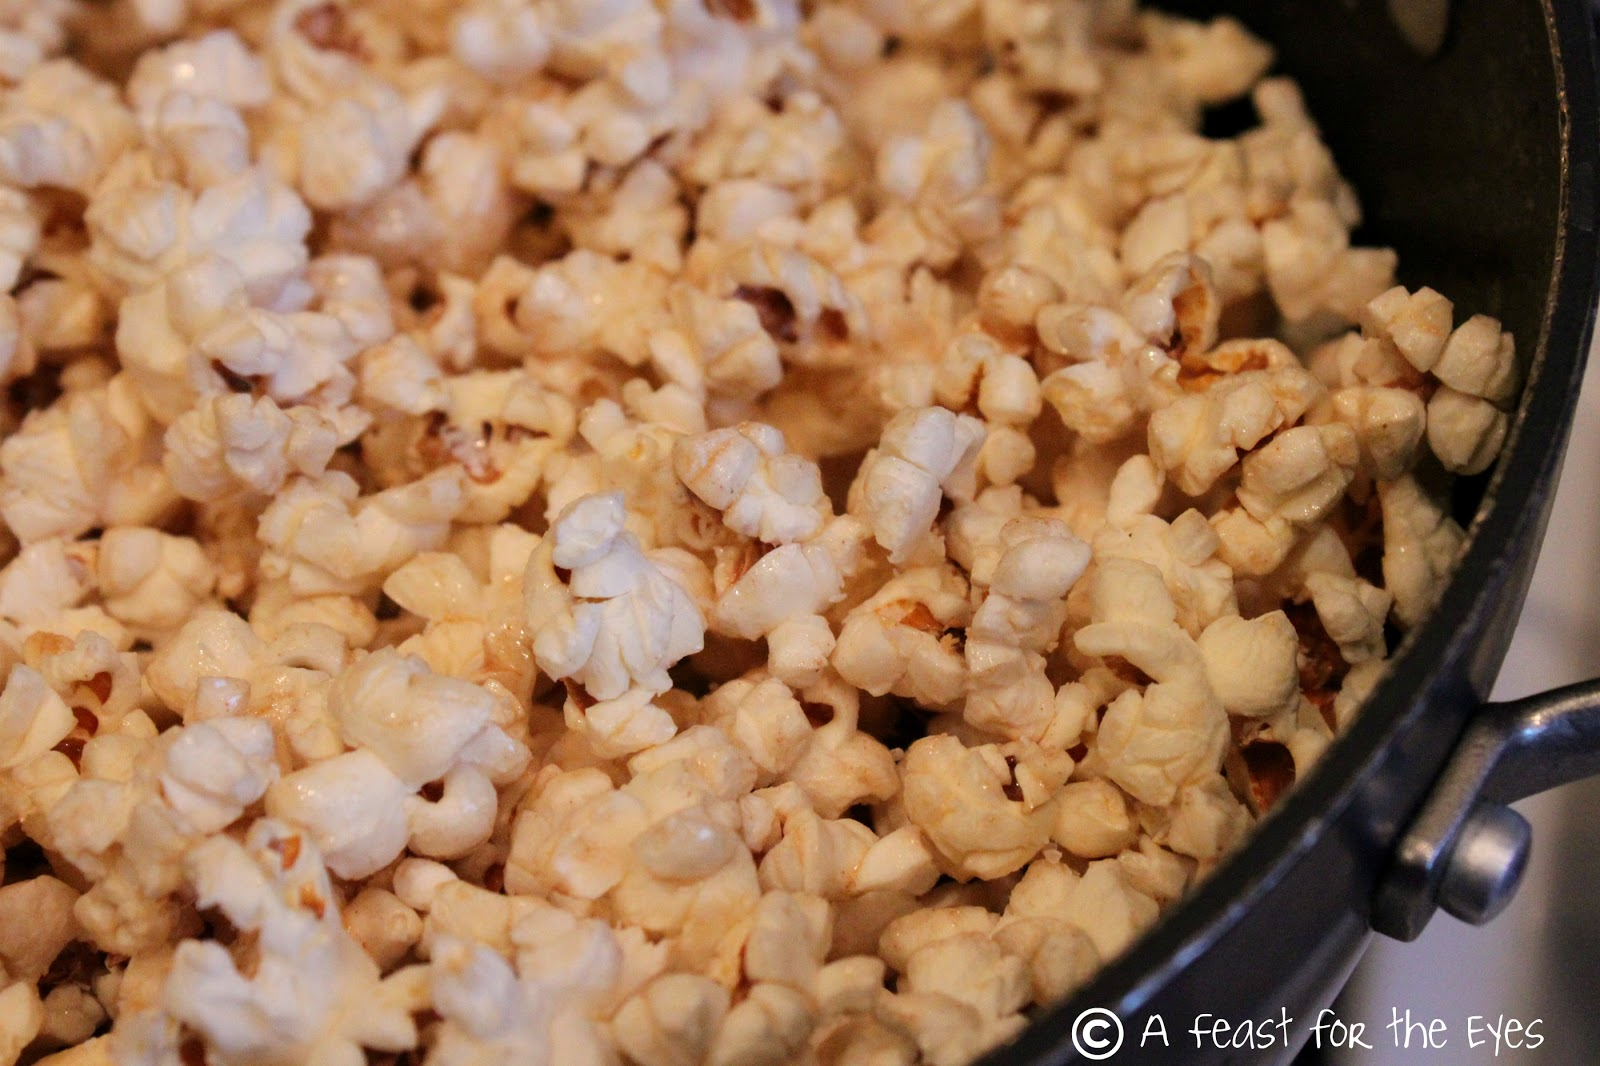 Feast for the Eyes: Perfect Kettle Corn